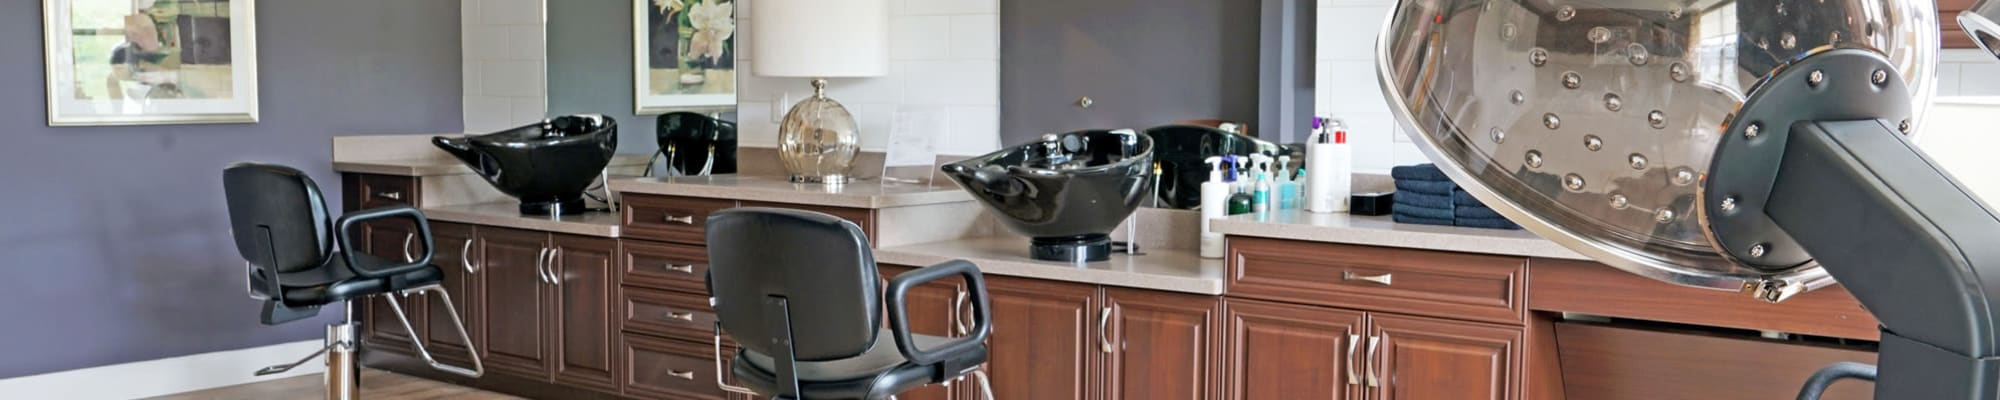 Services & Amenities at Harmony at White Oaks in Bridgeport, West Virginia